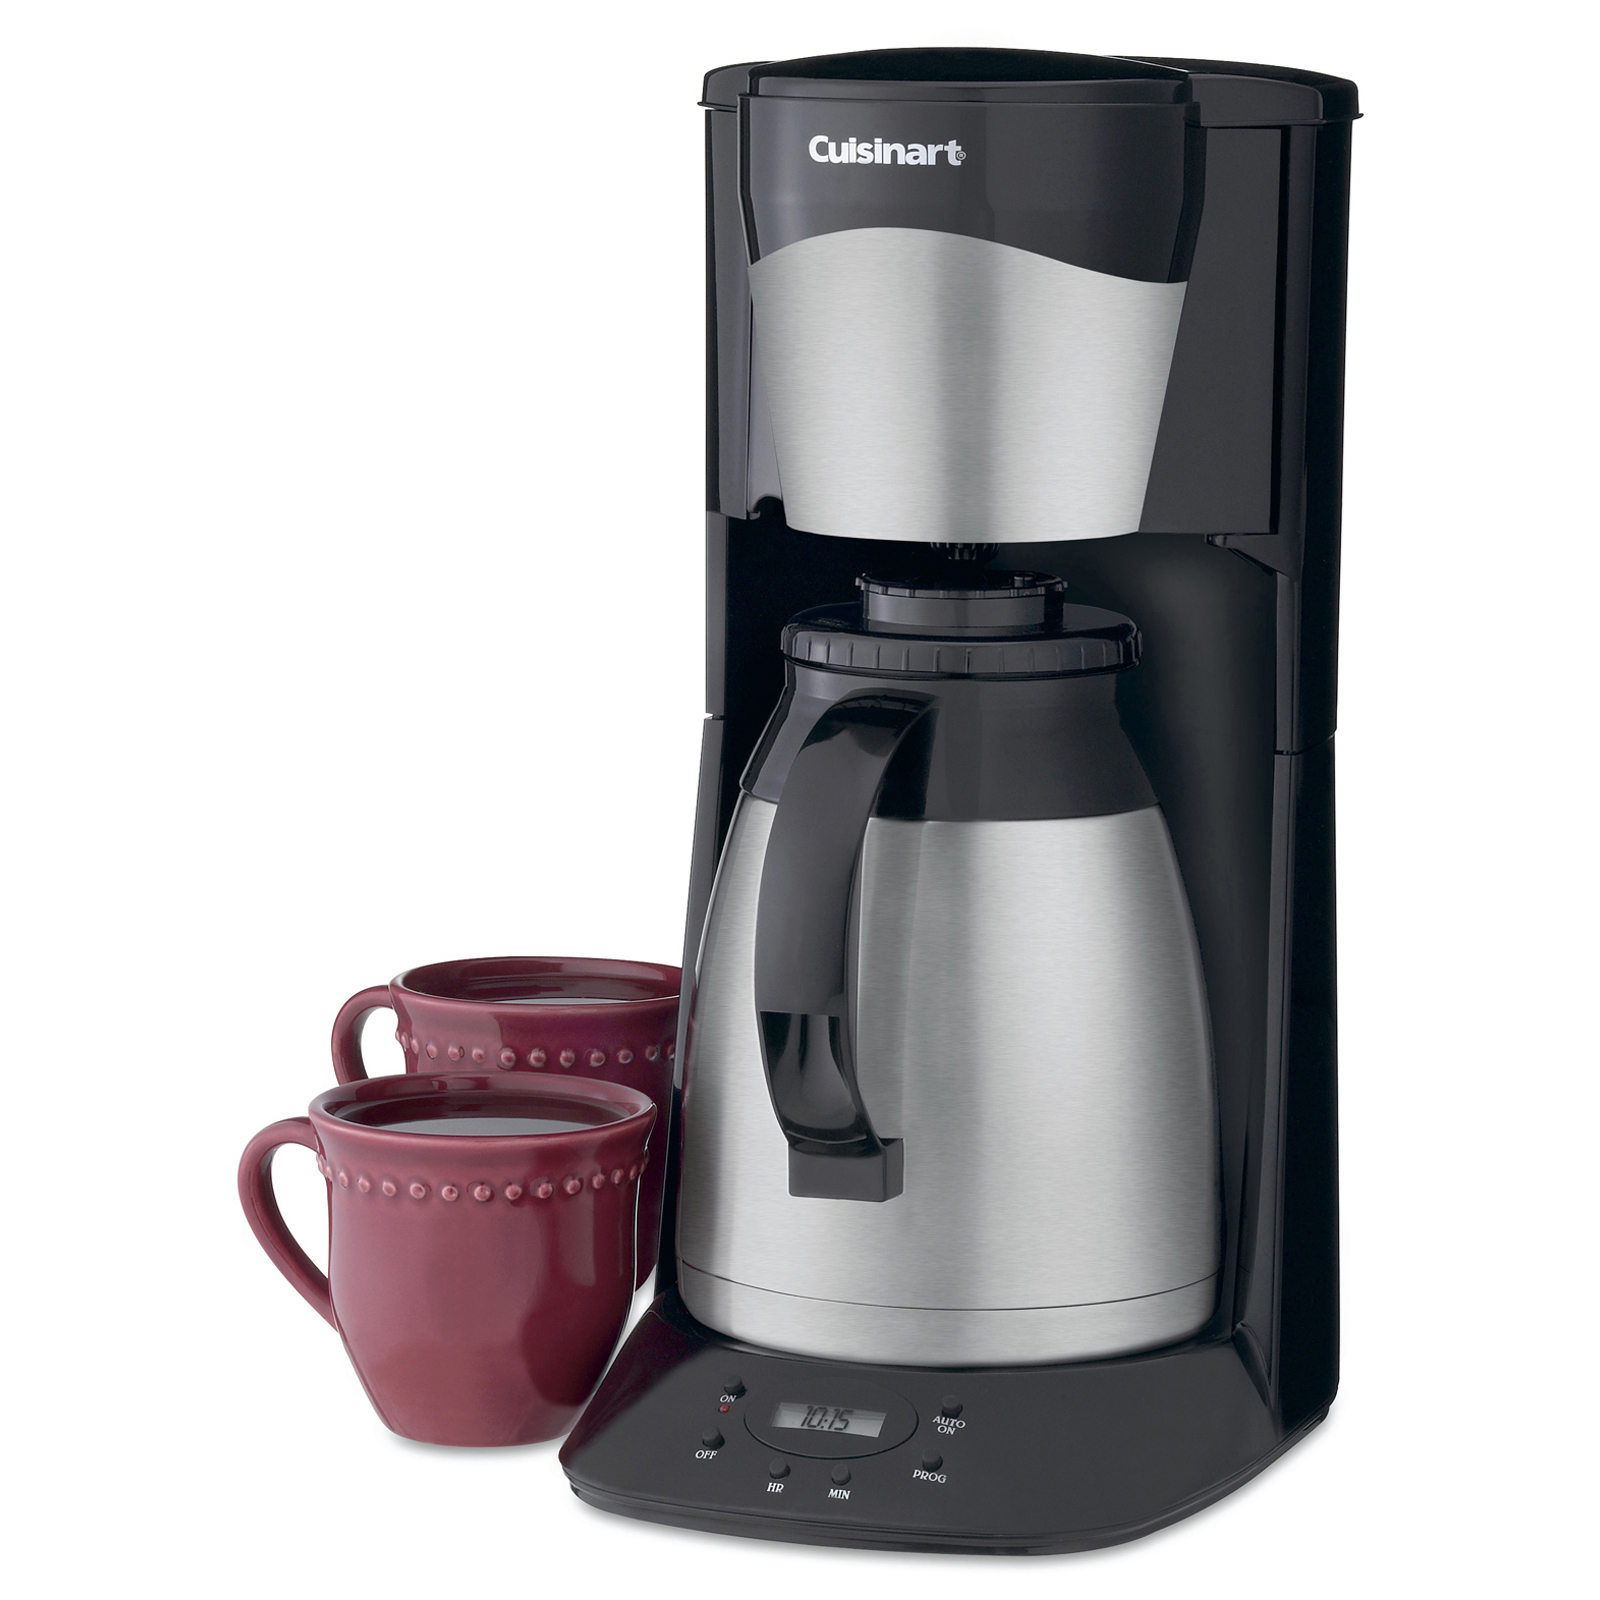 Cuisinart DTC-975 12-Cup Programmable Thermal Coffeemaker - Black & Stainless - Coffee Makers at ...